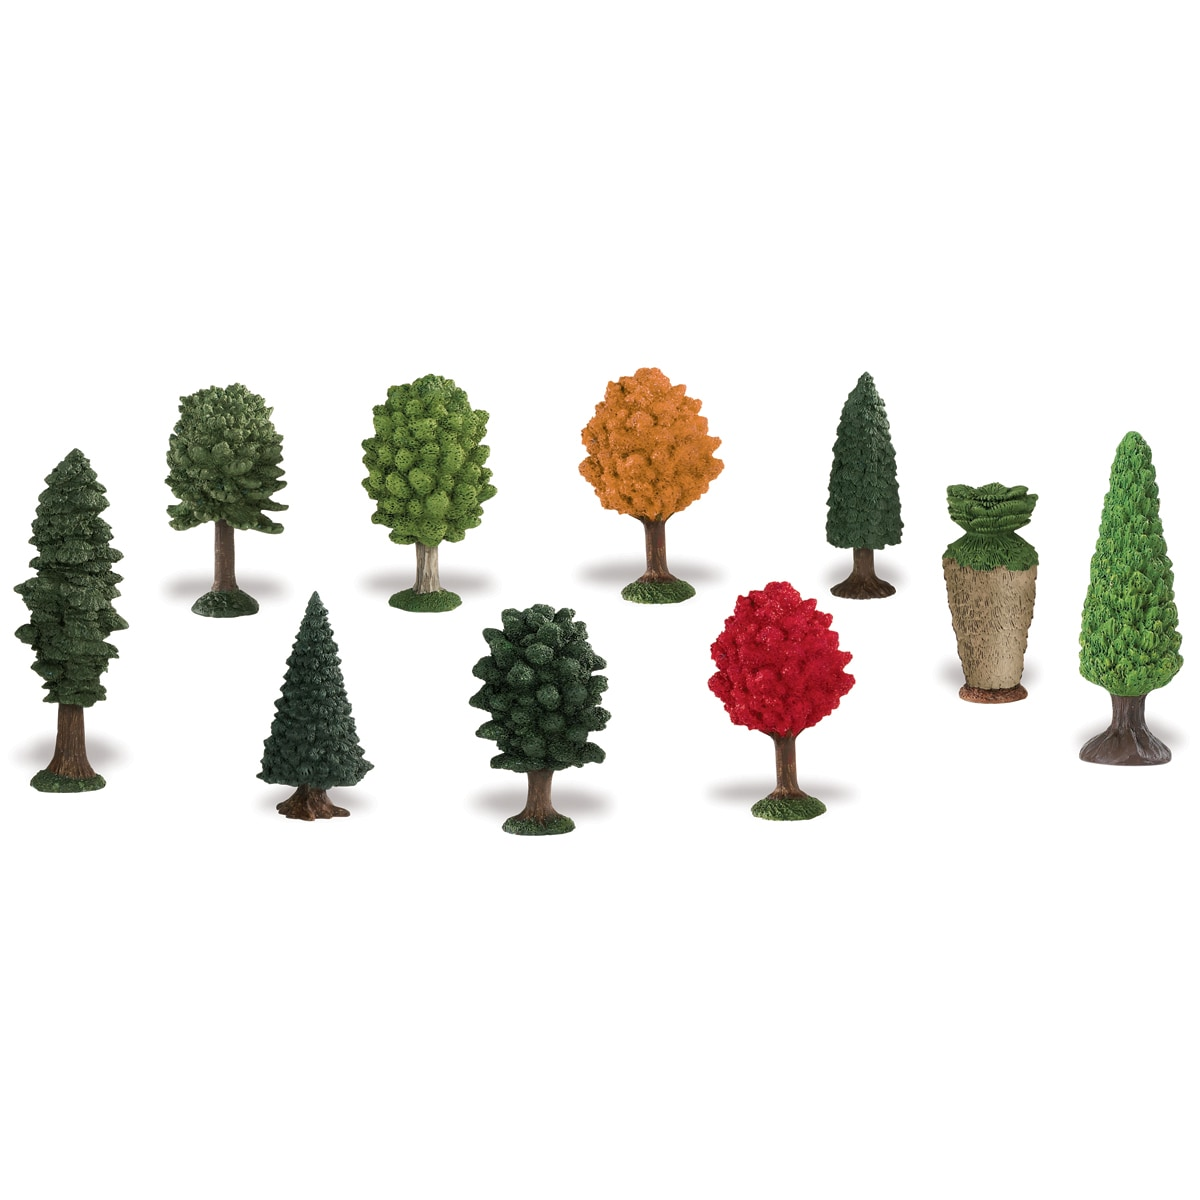 Trees Plastic Miniatures In Toobs